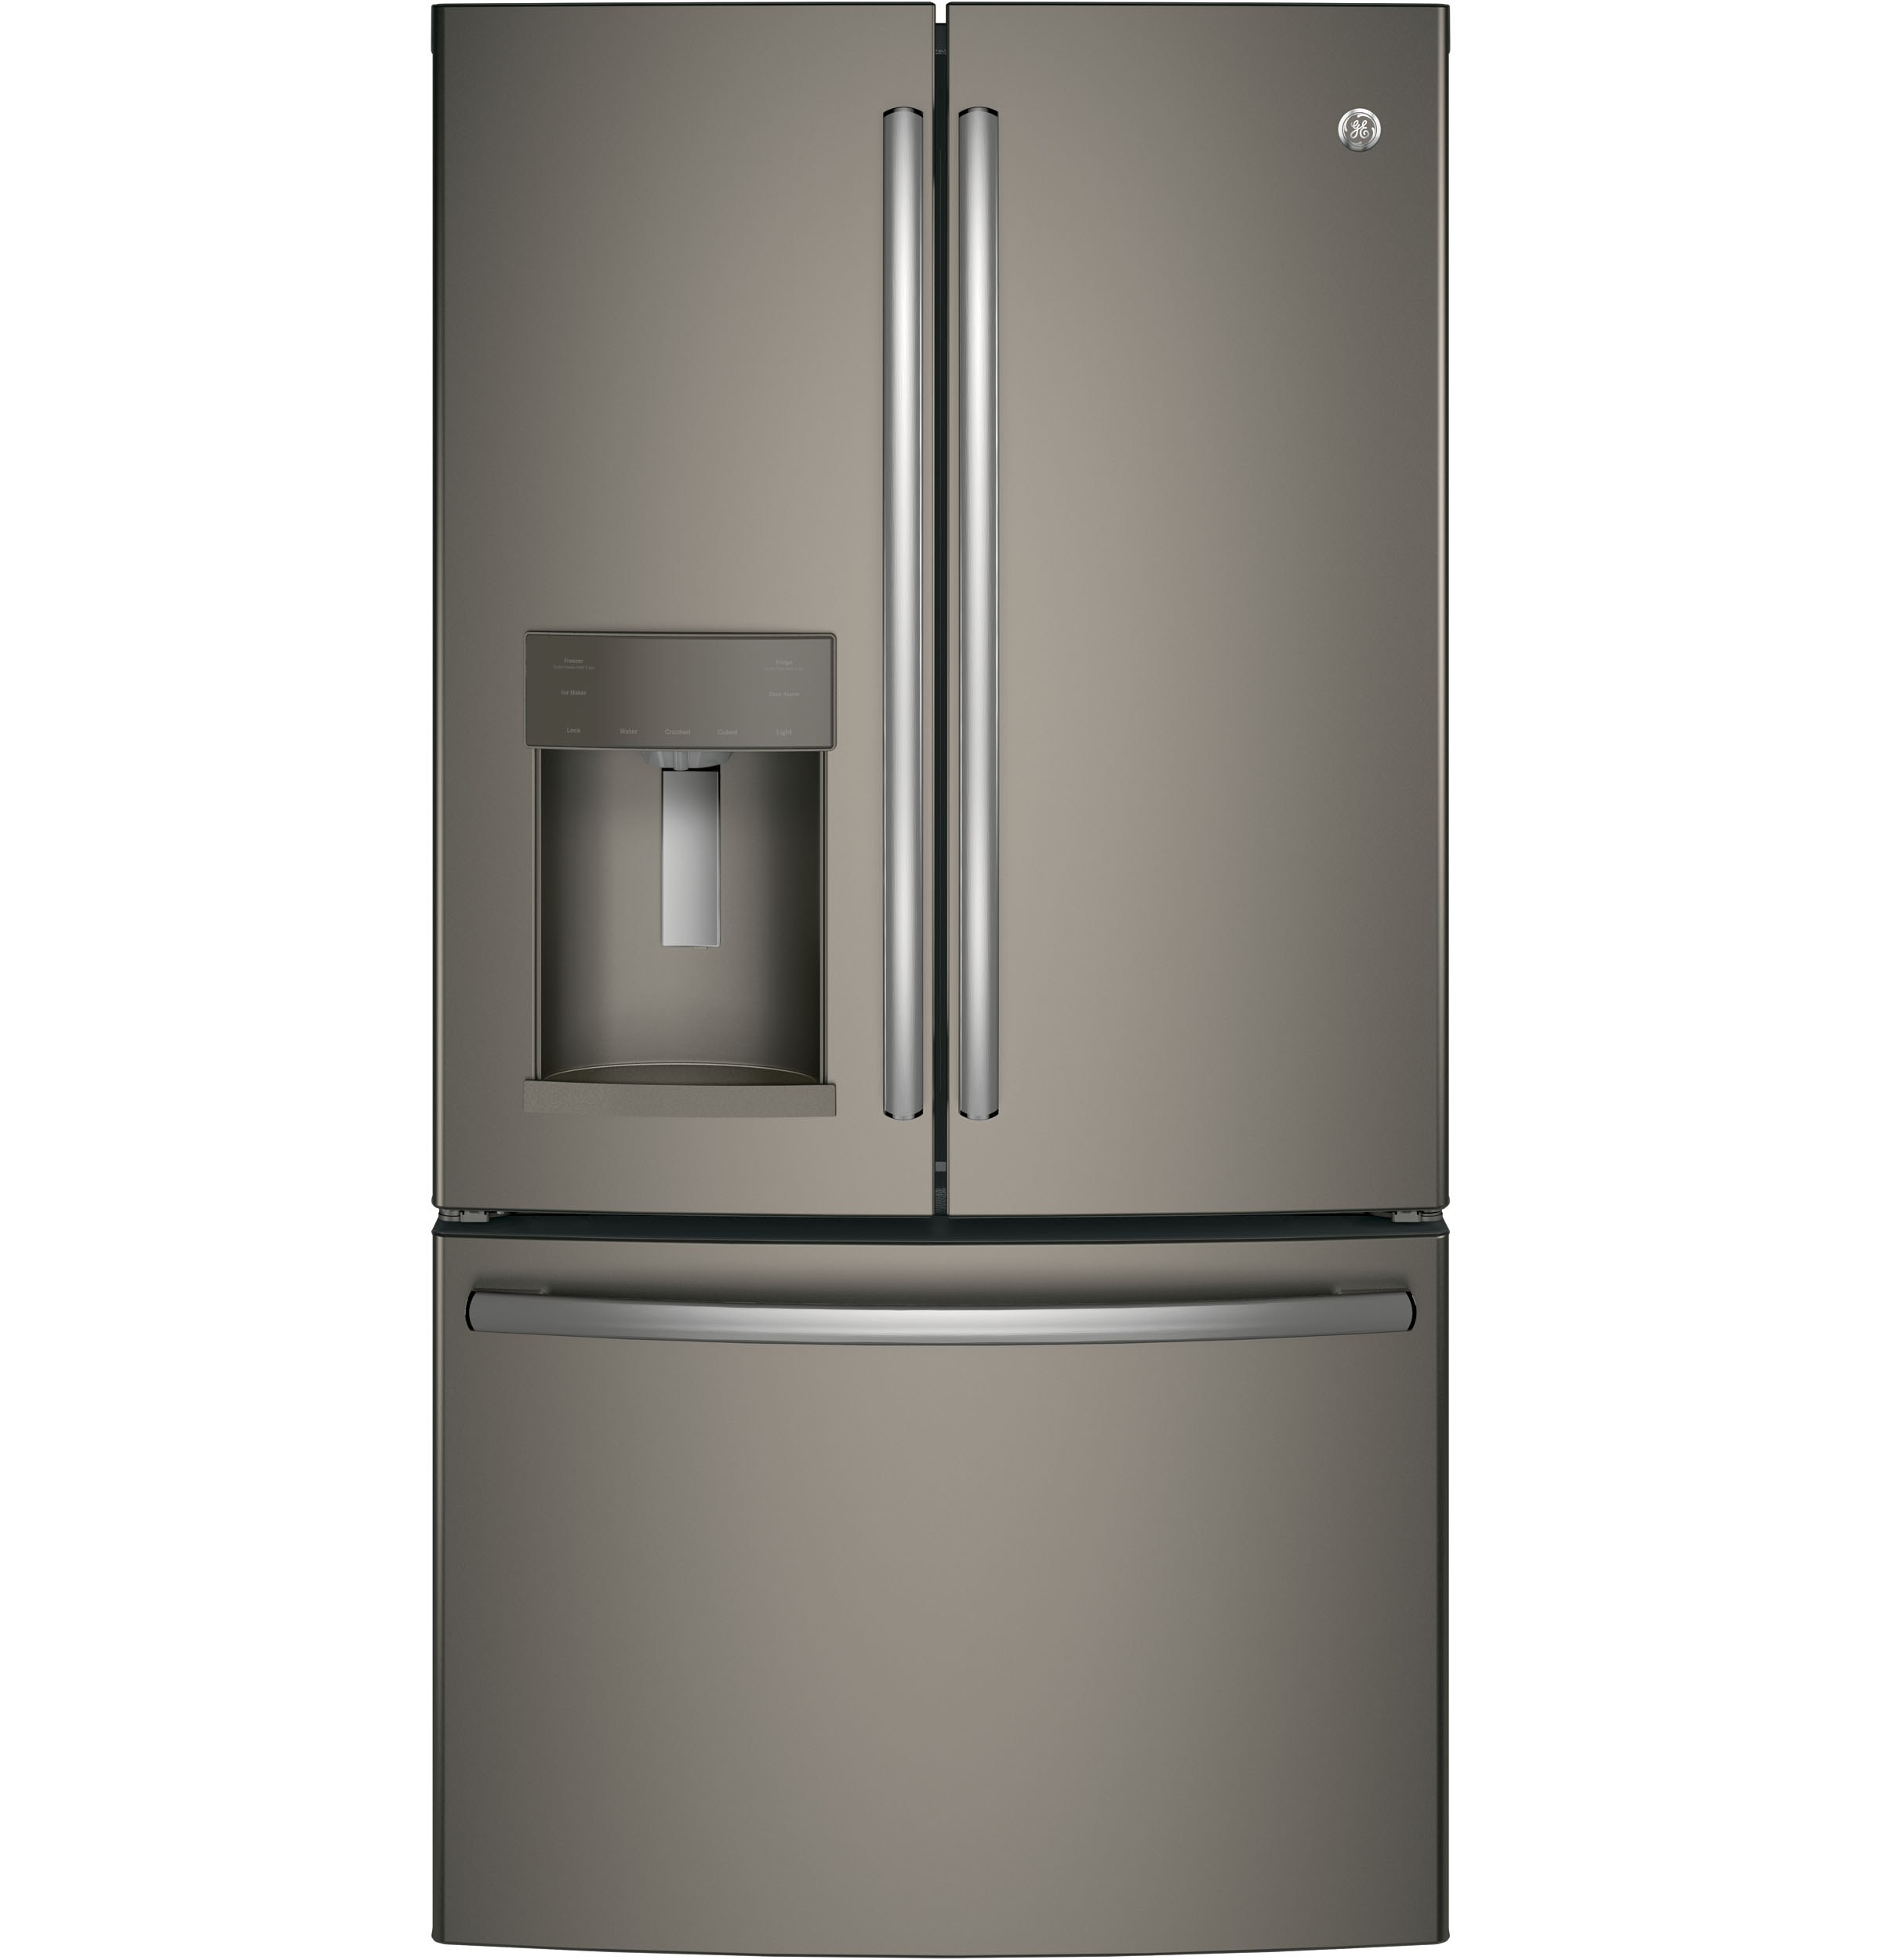 GE GE® ENERGY STAR® 22.2 Cu. Ft. Counter-Depth French-Door Refrigerator